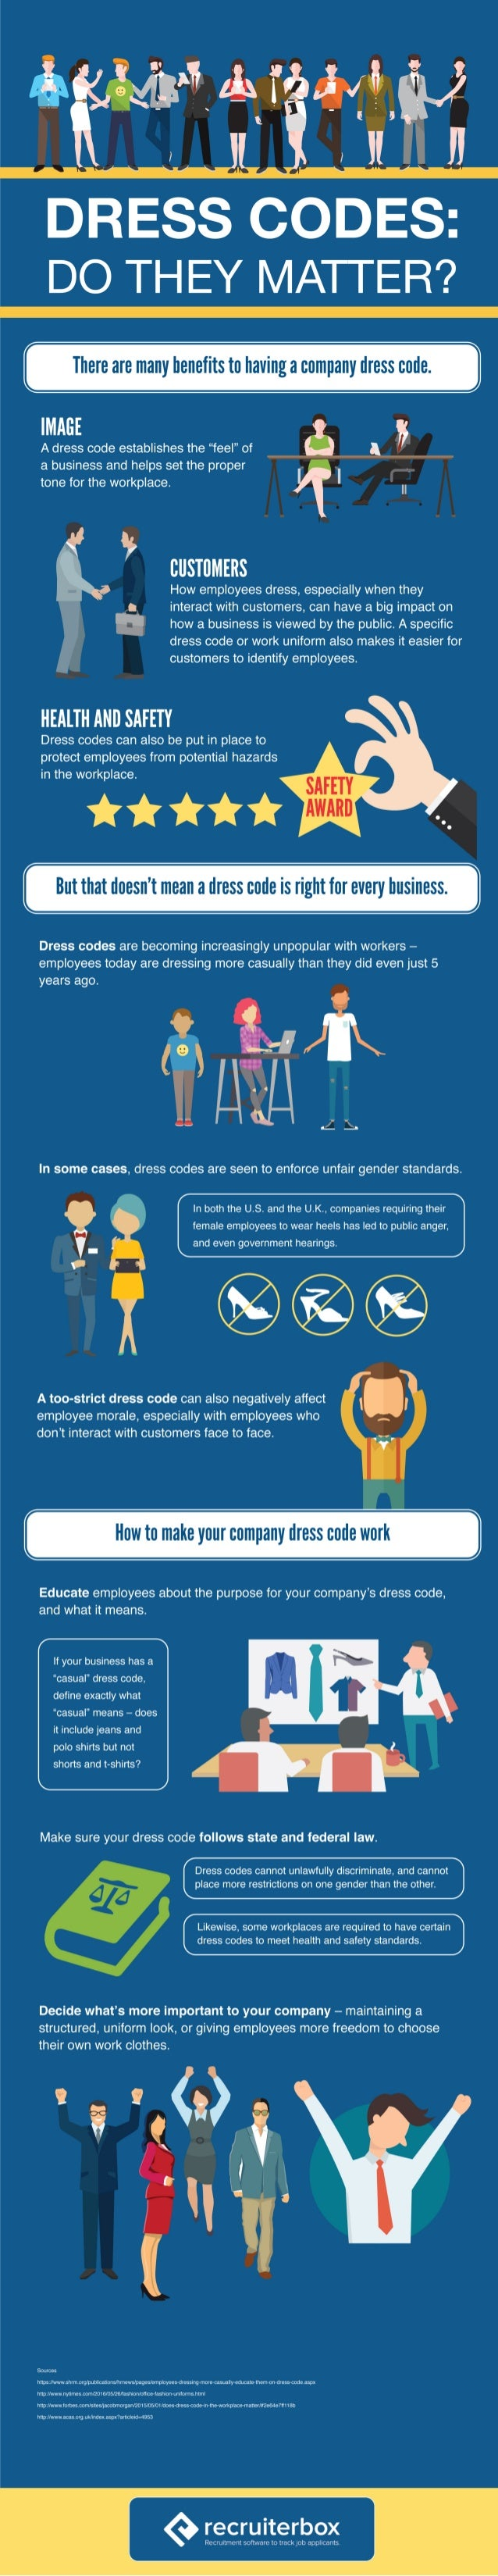 Dress Codes: Do They Matter?